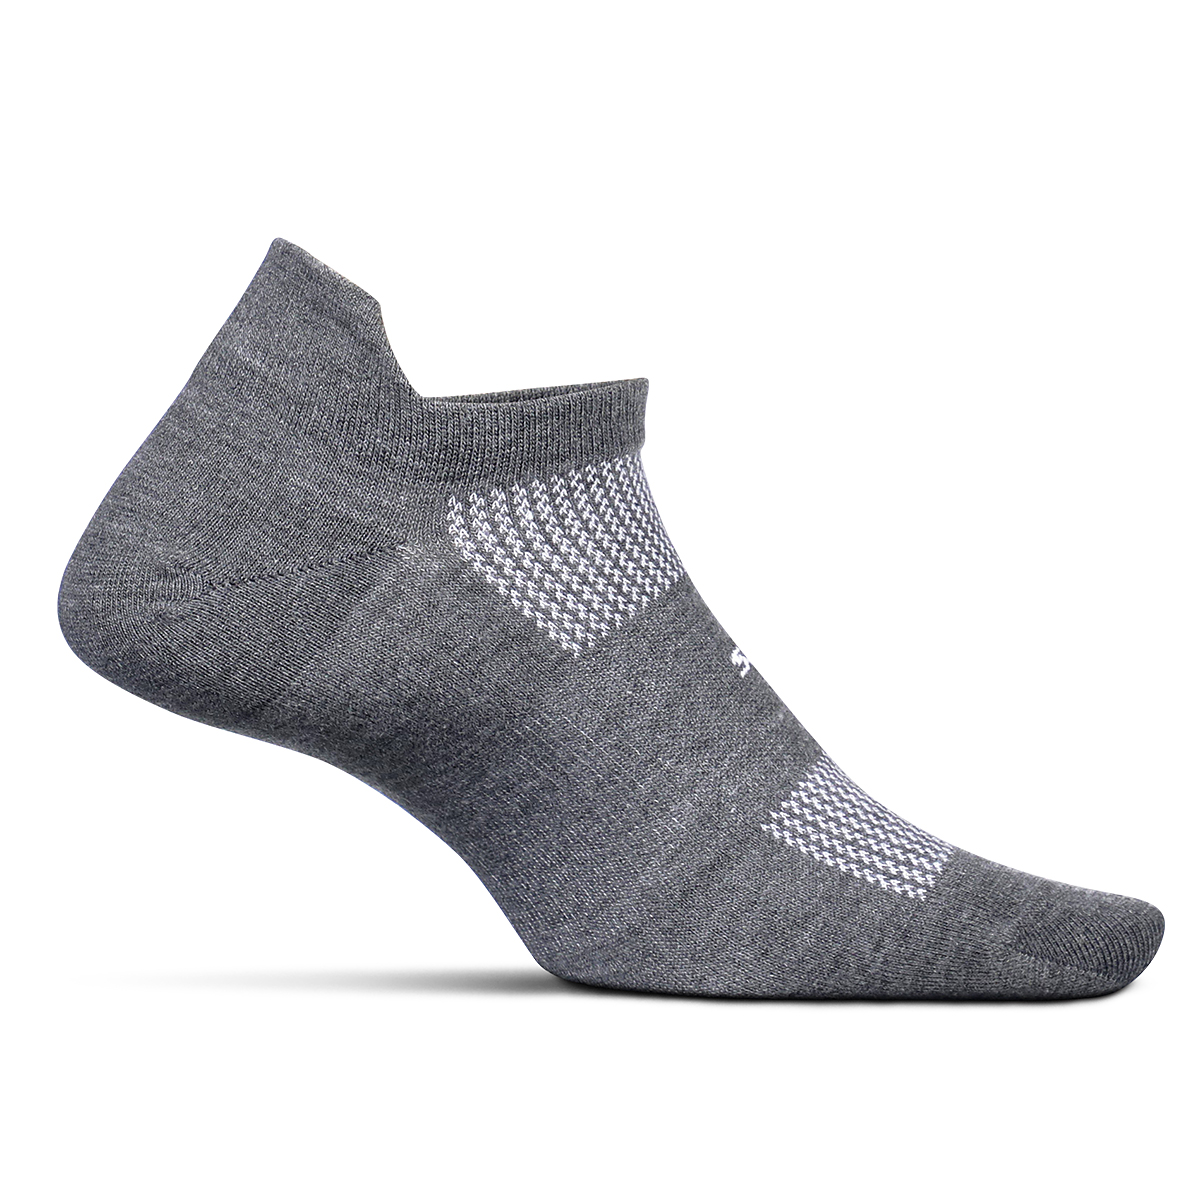 Feetures HP Cushion No Show Tab Socks - Color: Grey - Size: S, Grey, large, image 1